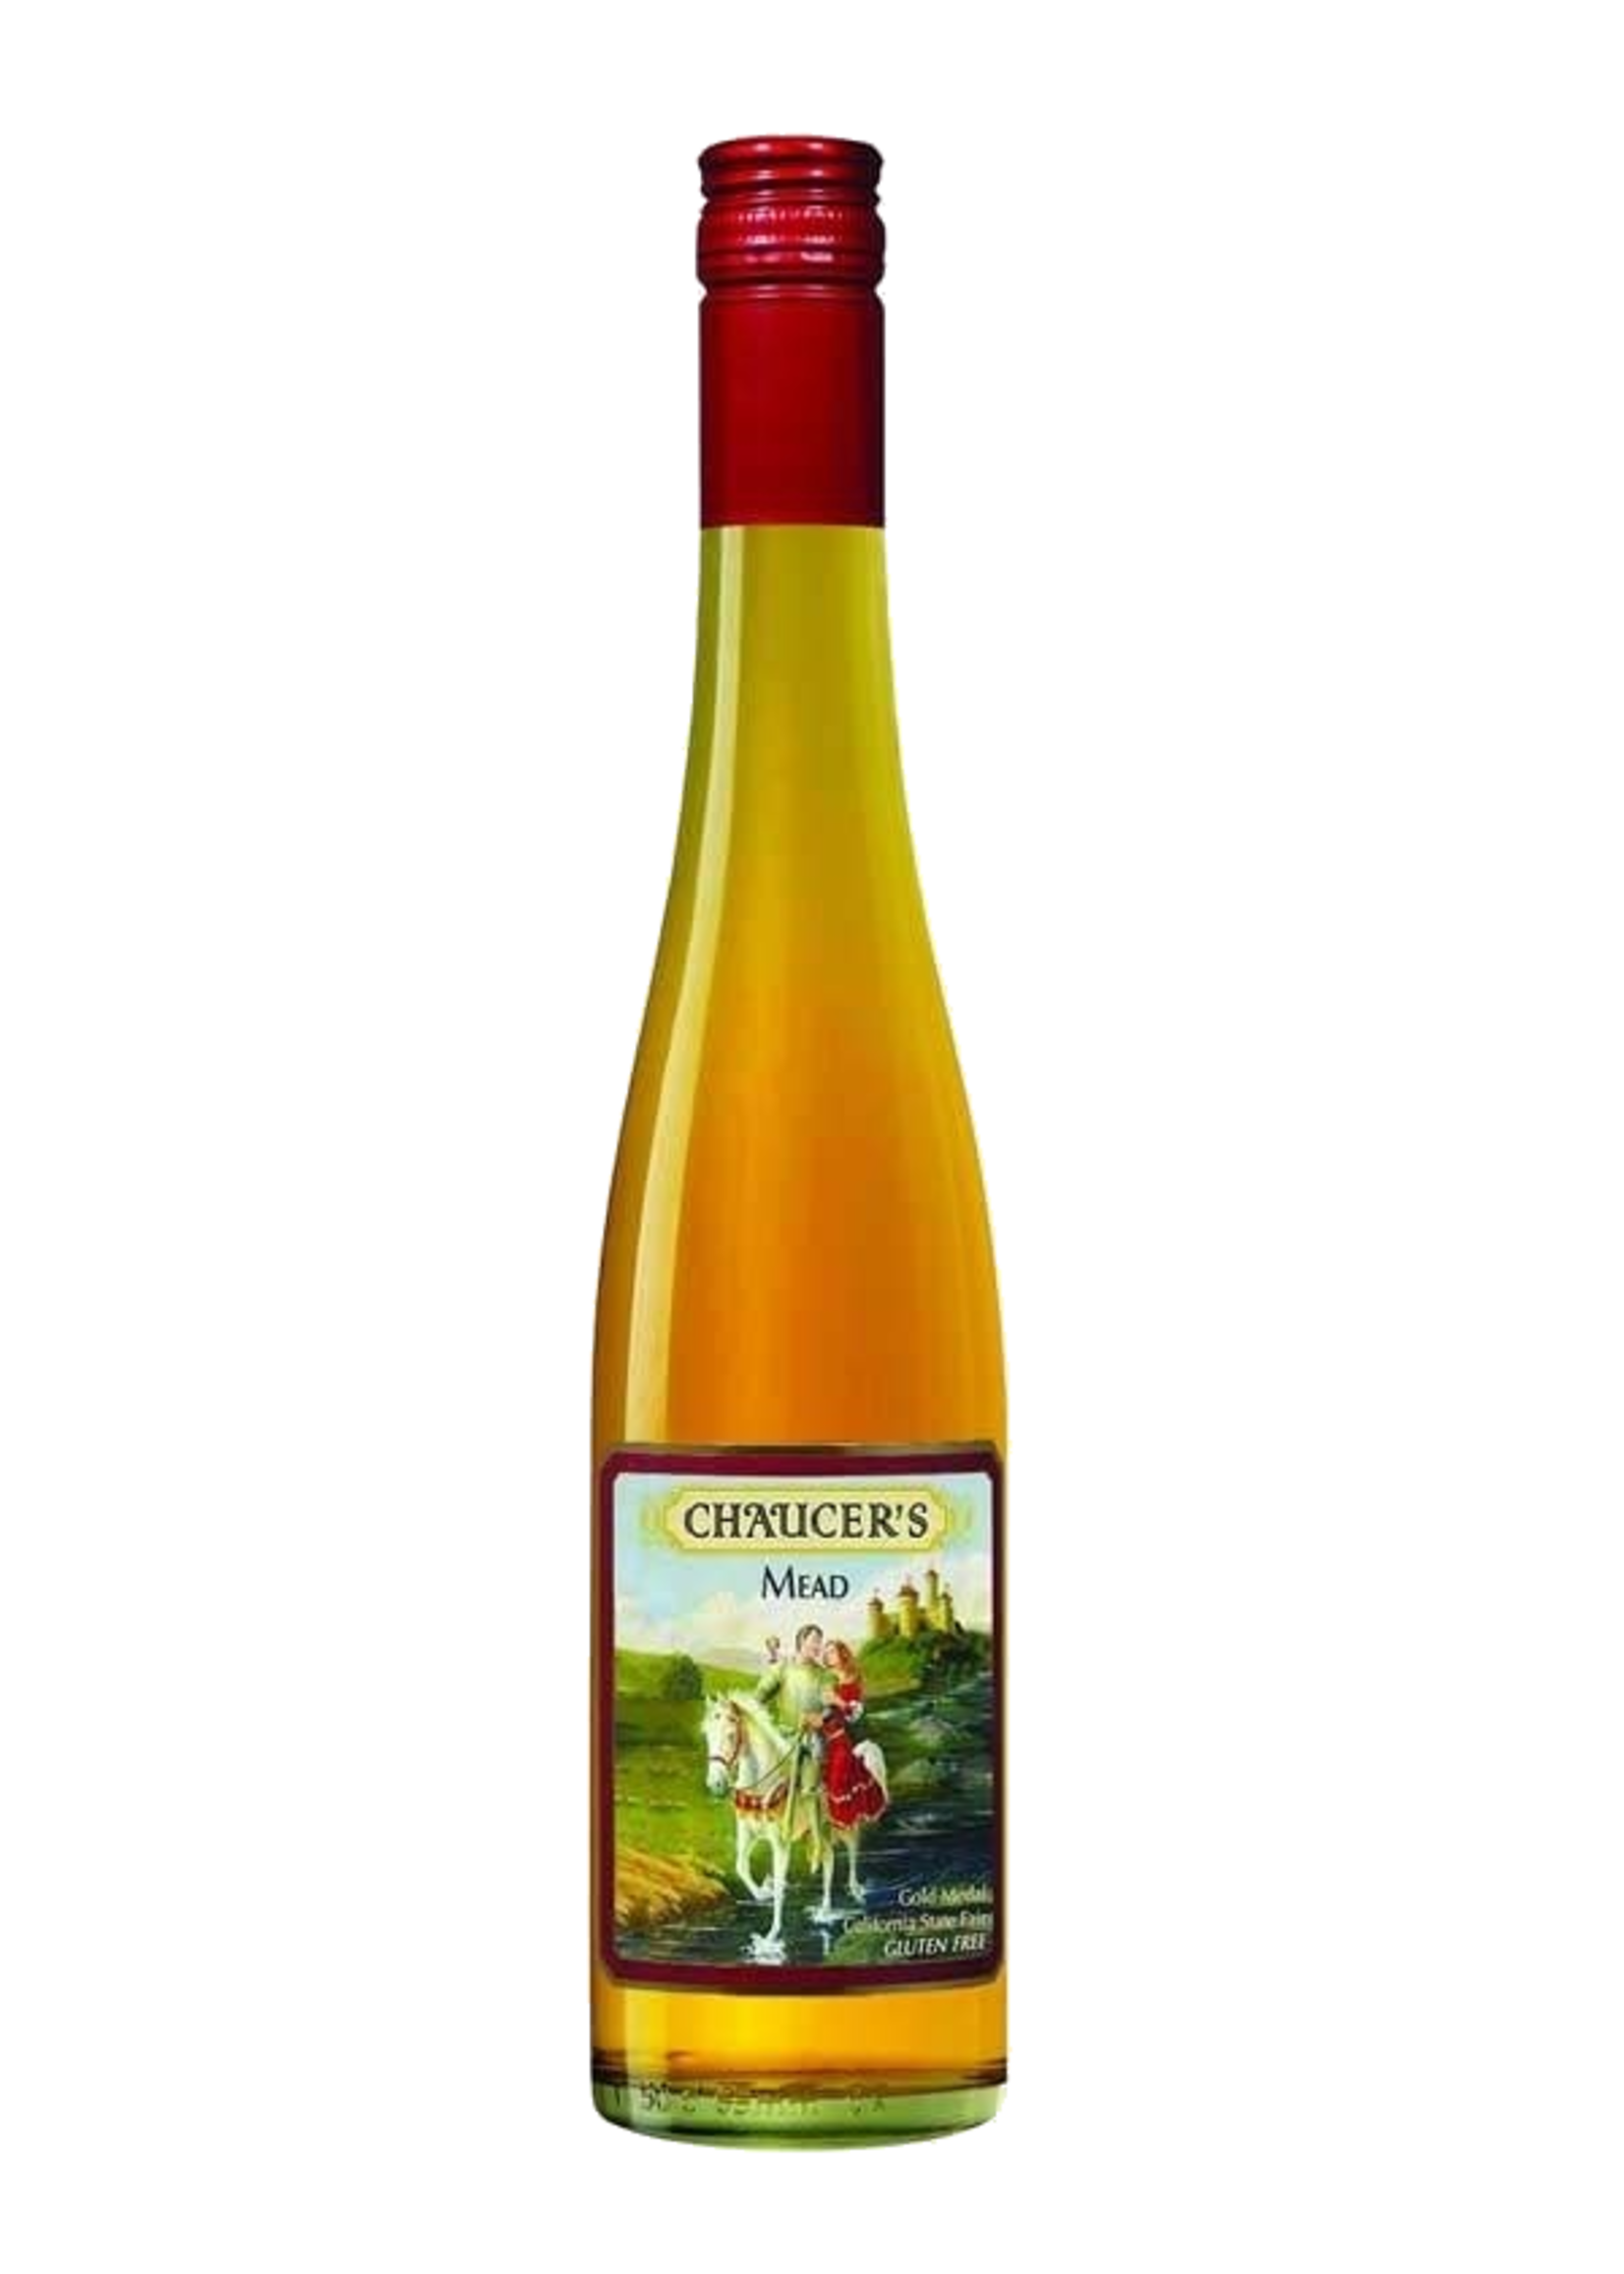 Chaucer's Chaucer's / Mead / 750mL